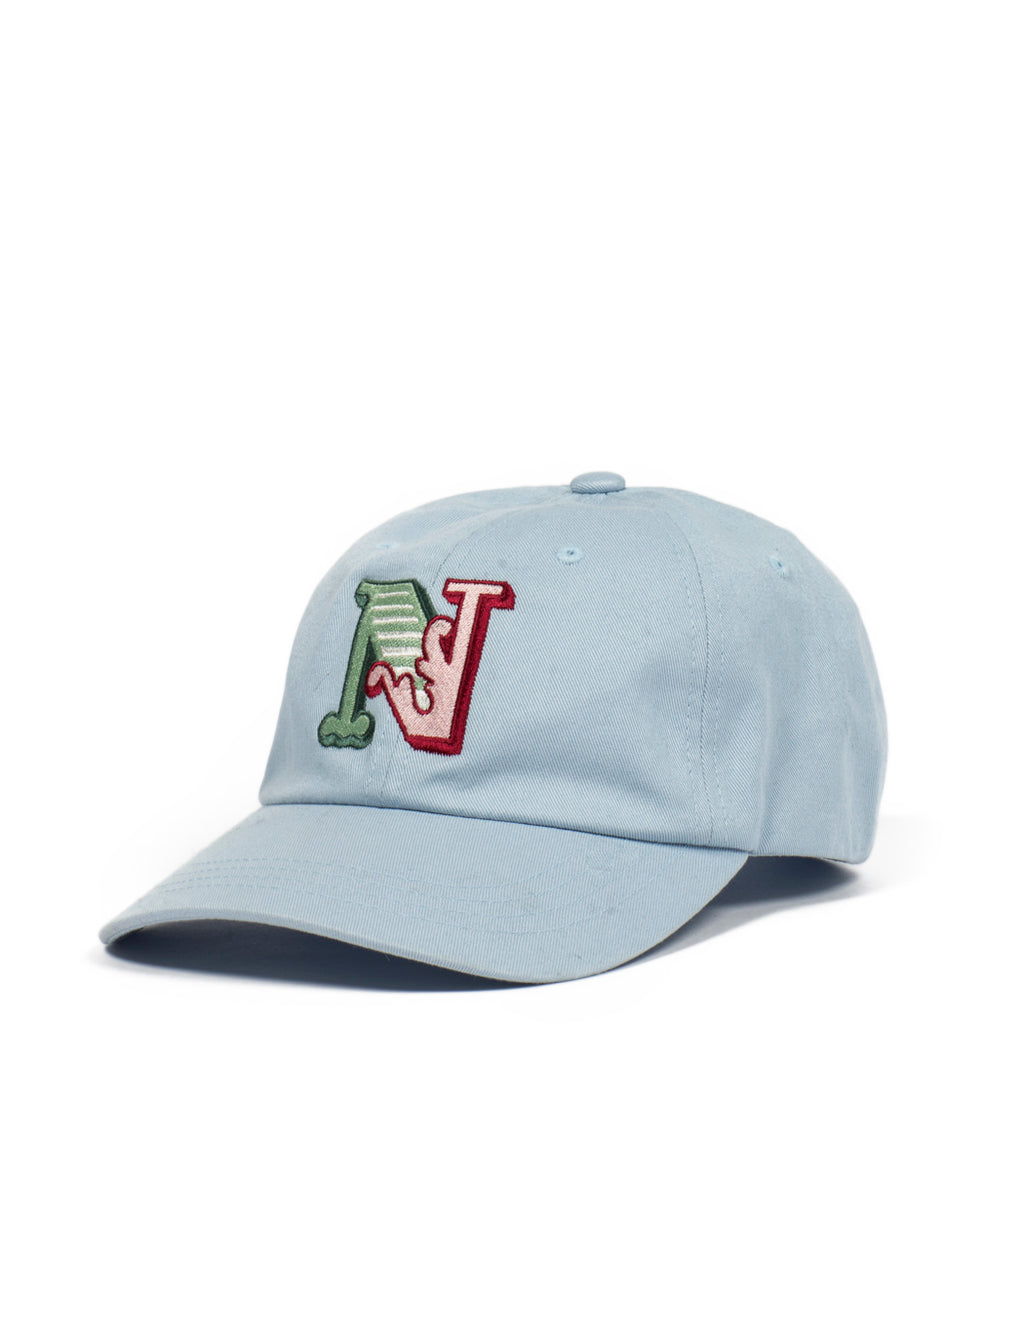 Circus N Cotton Baseball Cap  - Baby Blue - Eine London by Ben Eine